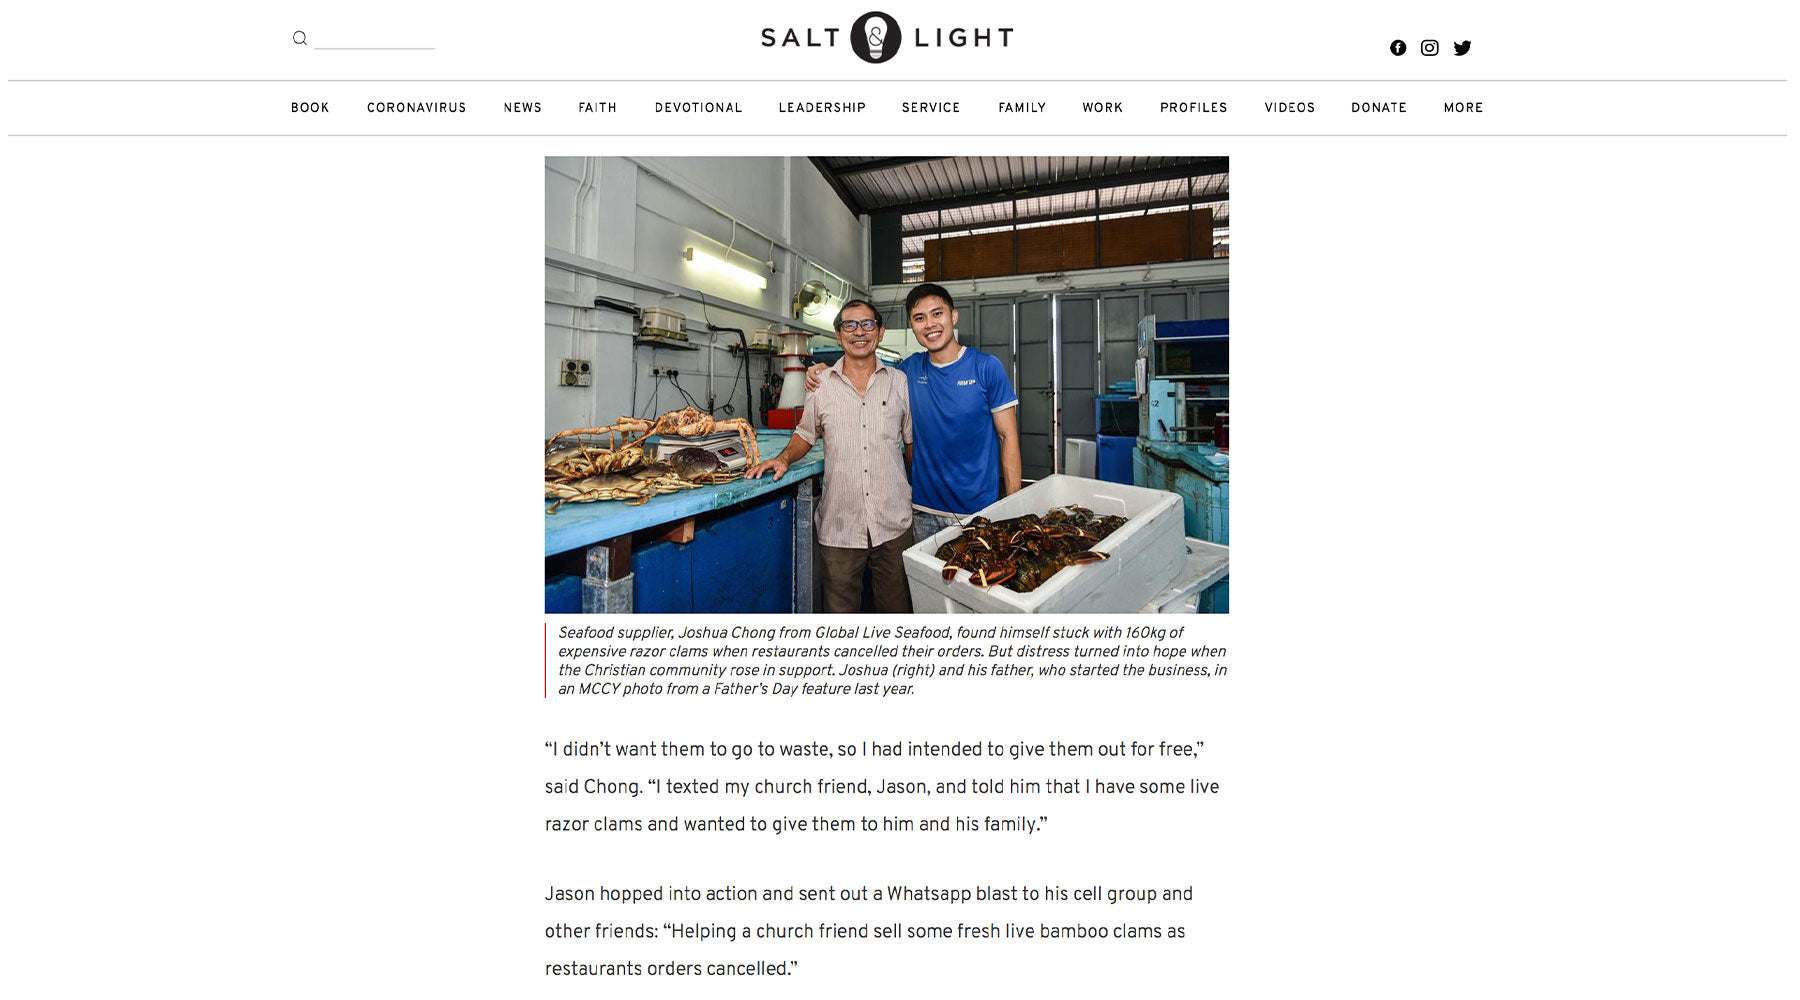 global live seafood featured in salt and light blog